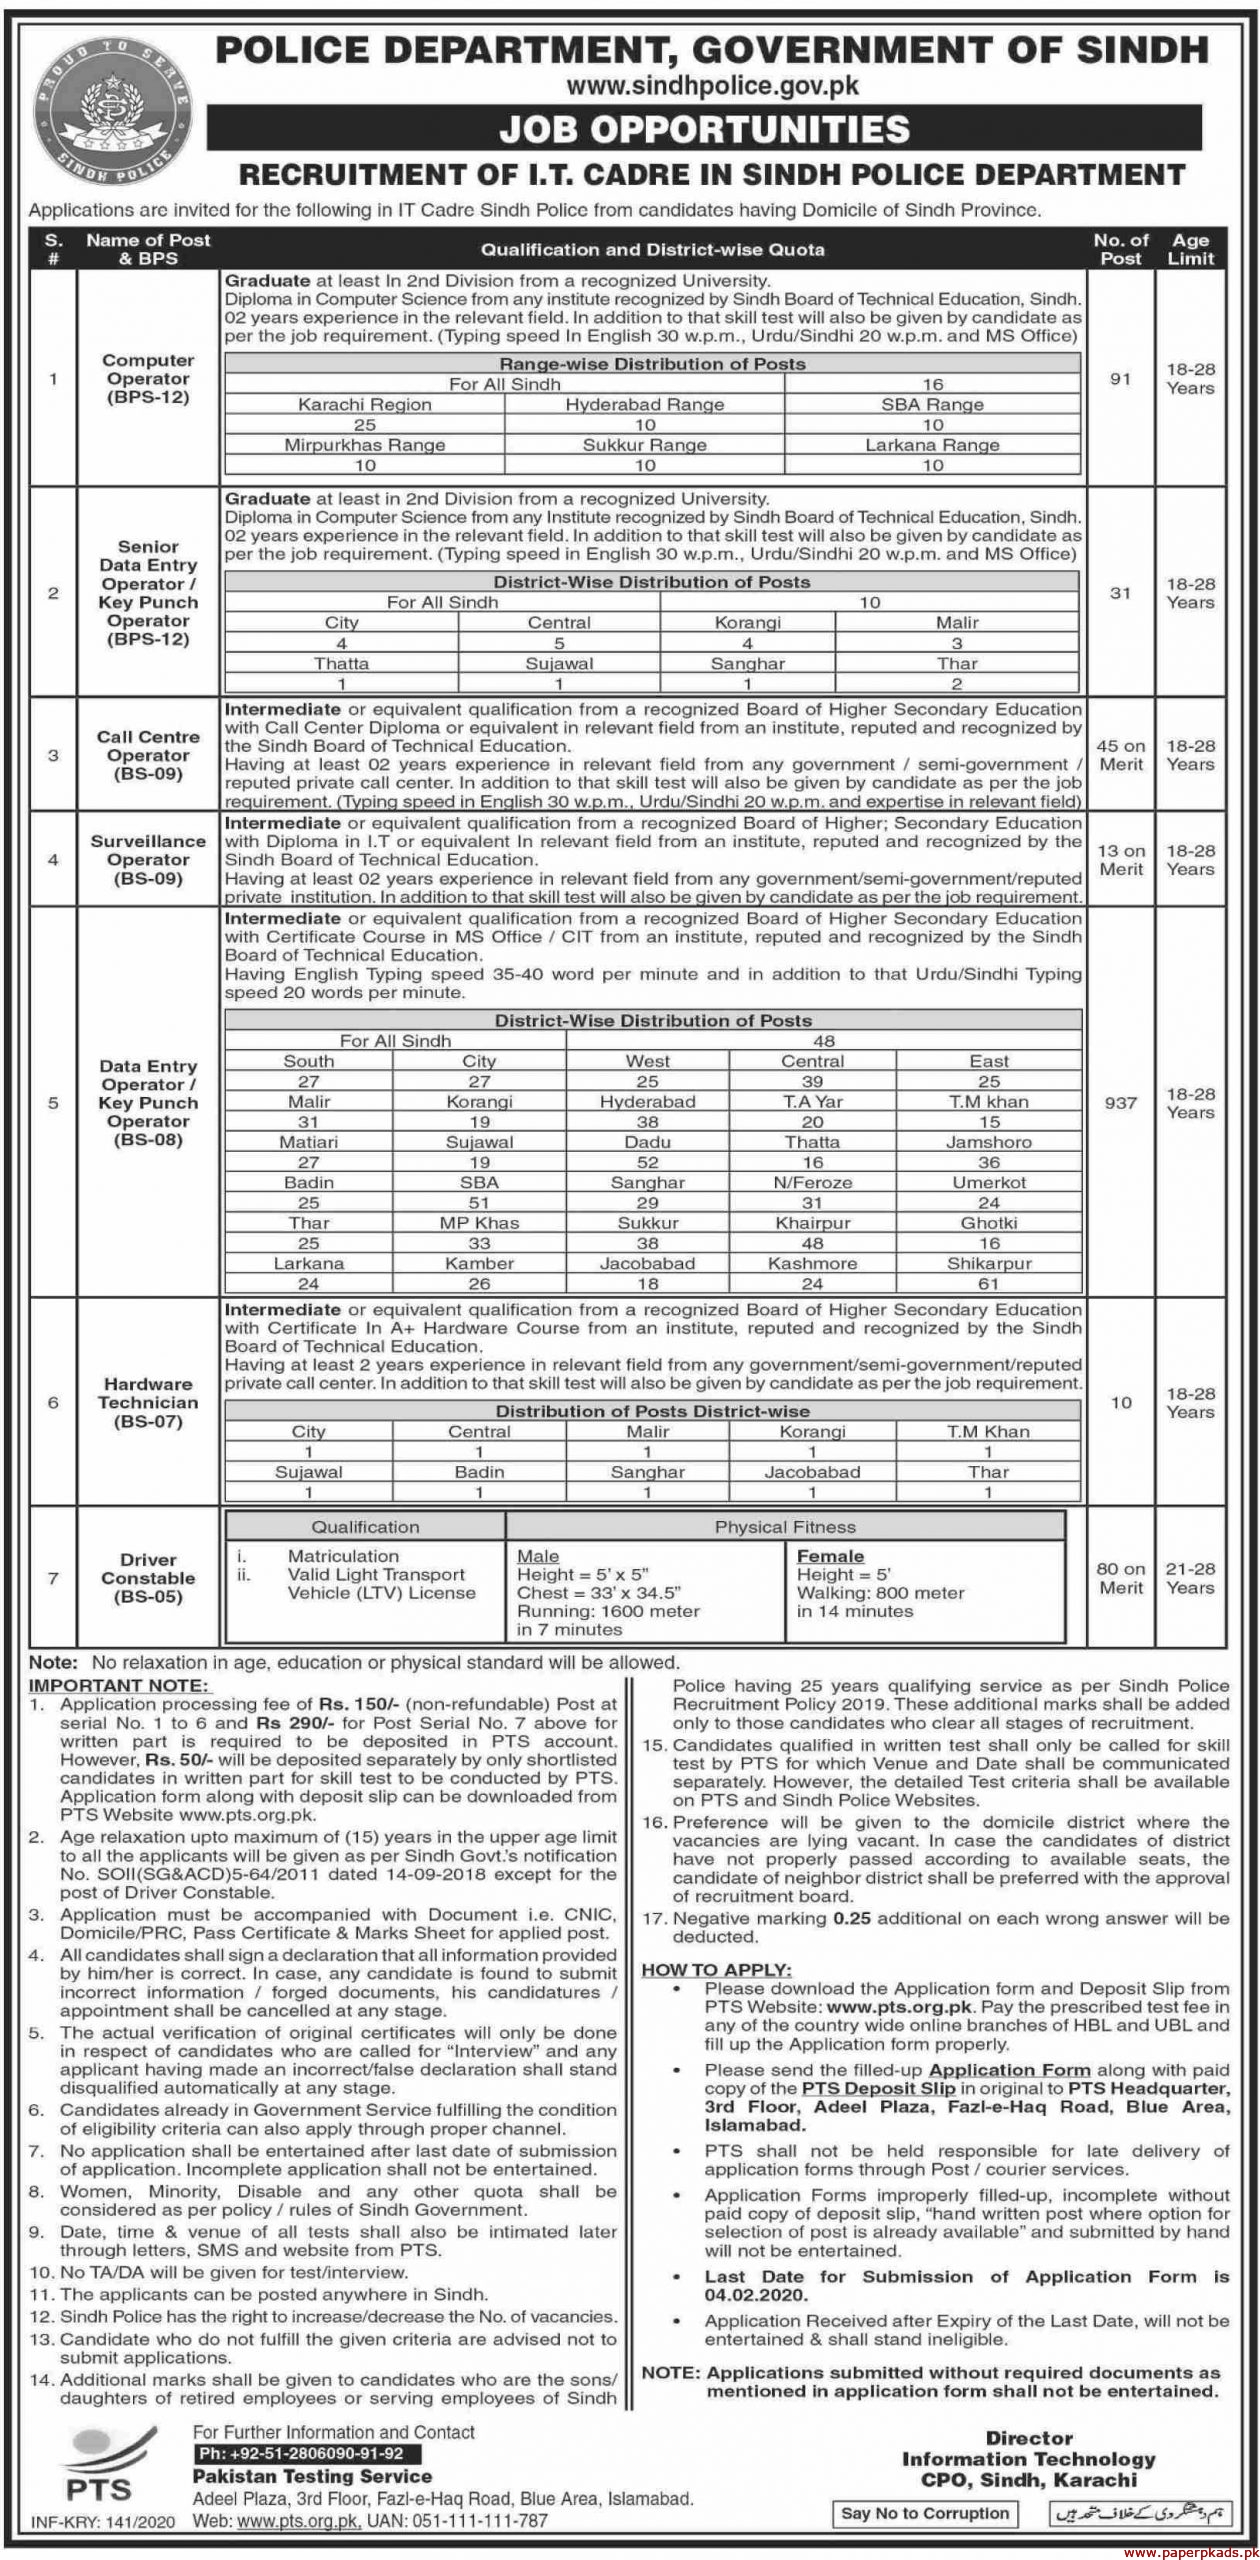 Sindh Police Jobs 2020 for 1207+ Data Entry Operators, Computer Operators, Call Centre Operators, Surveillance Operators & Others Latest